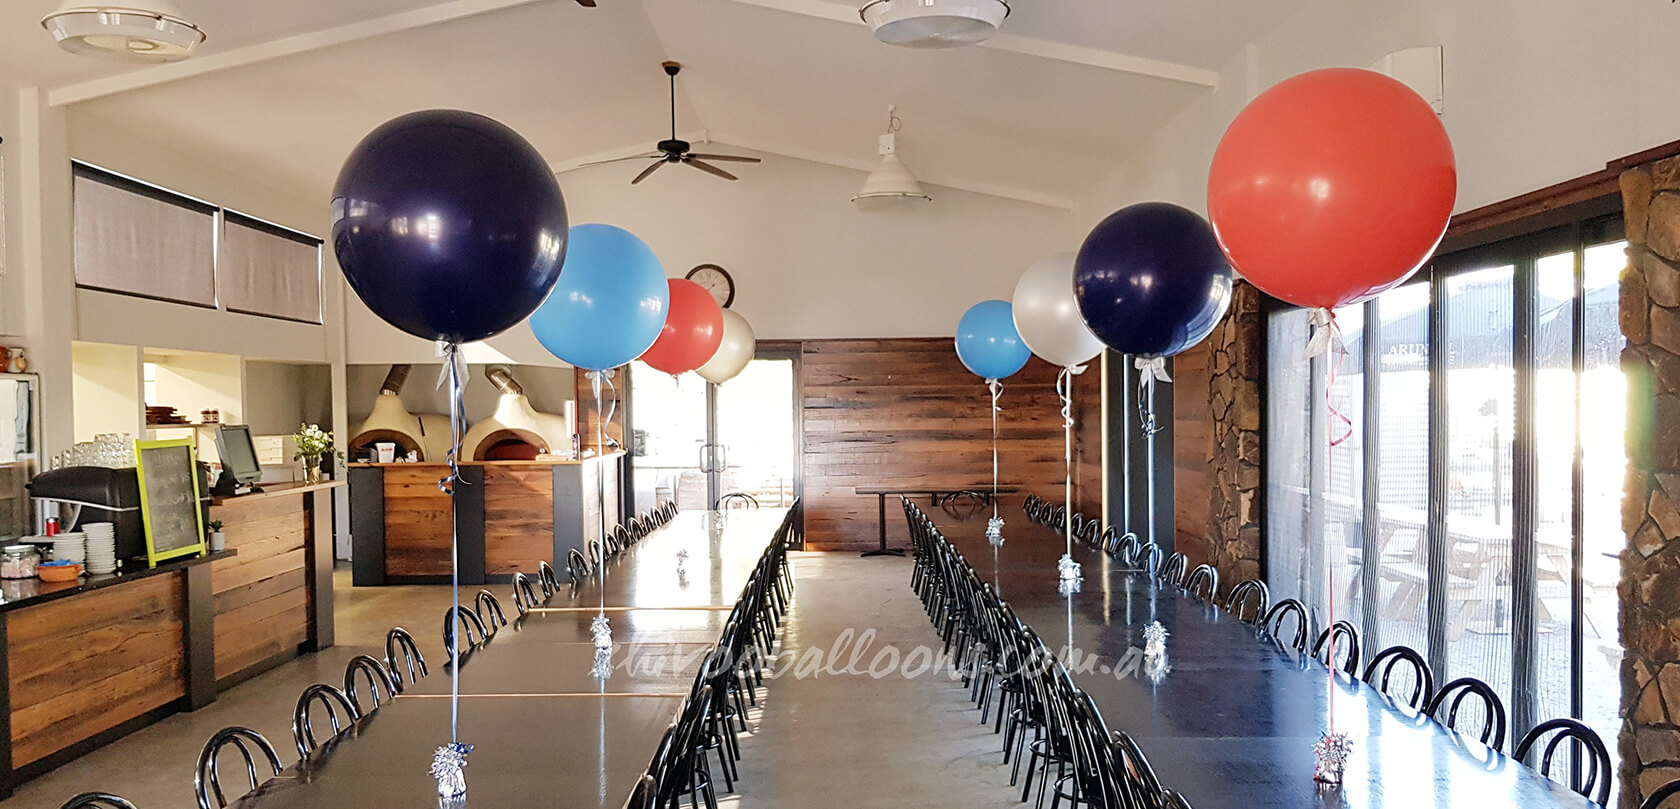 See Our Events! - image CE-51 on https://shivooballoons.com.au